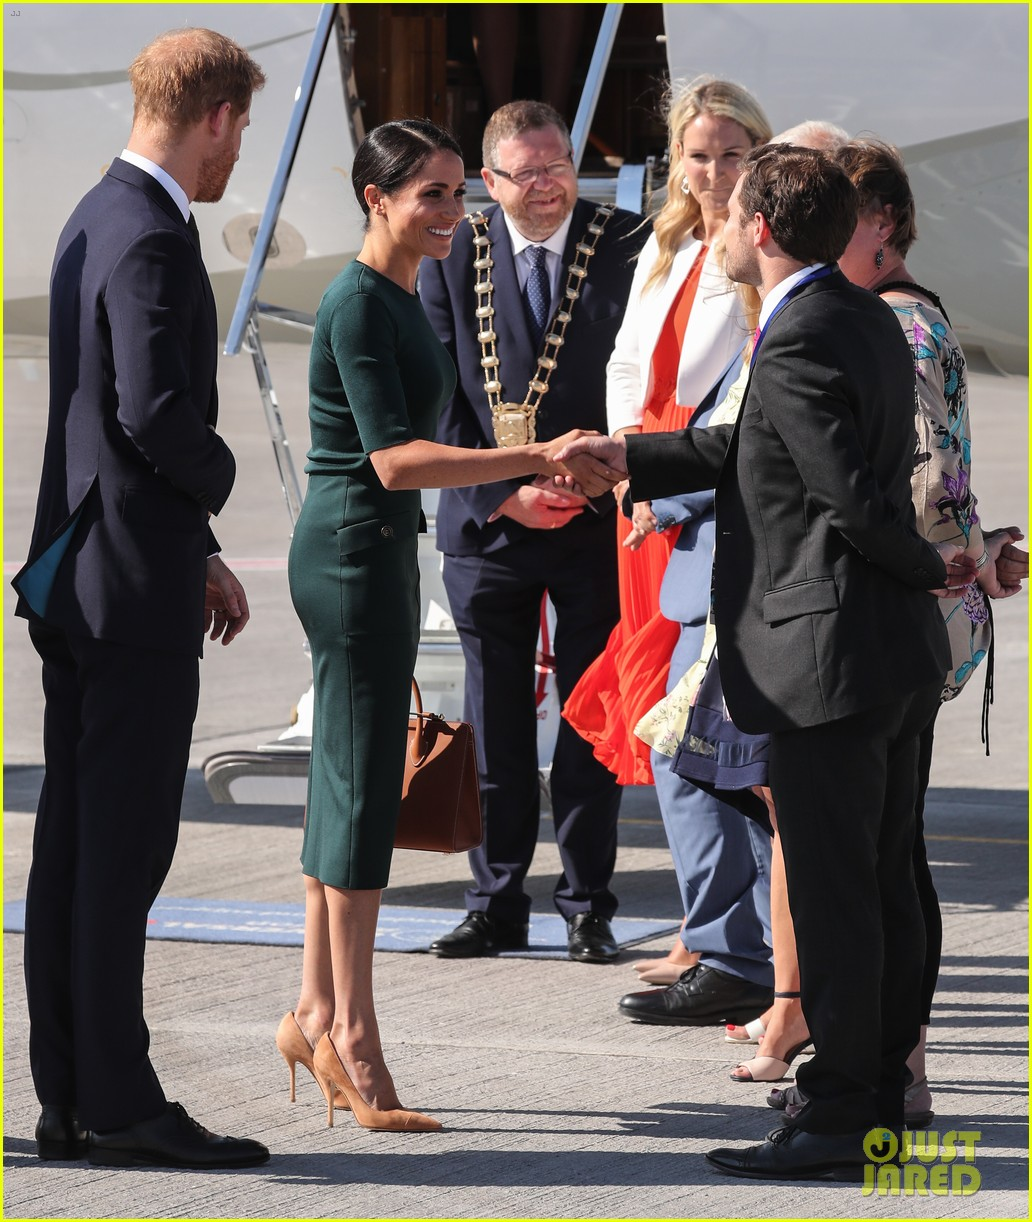 Duchess Meghan Markle Does An Outfit Change For Her Royal